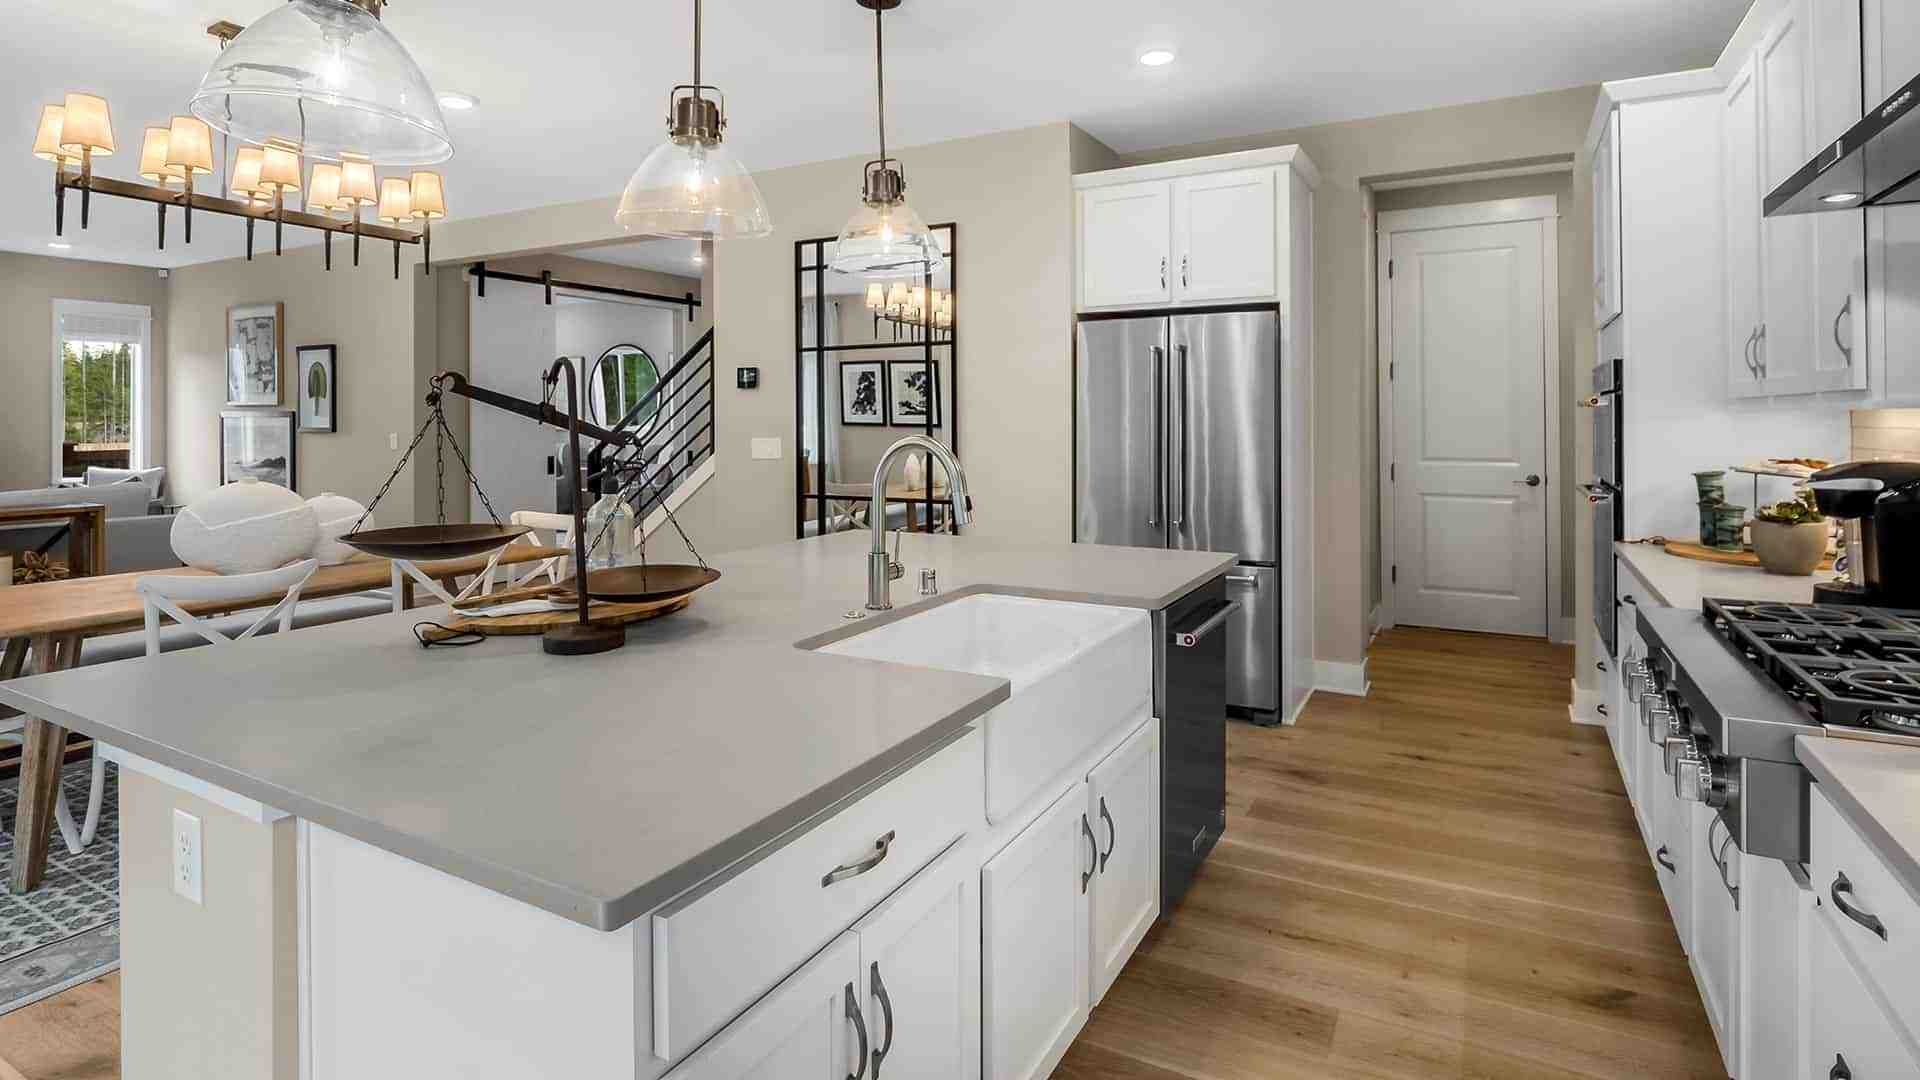 Kitchen featured in the Plan A-300 By Tri Pointe Homes in Bremerton, WA